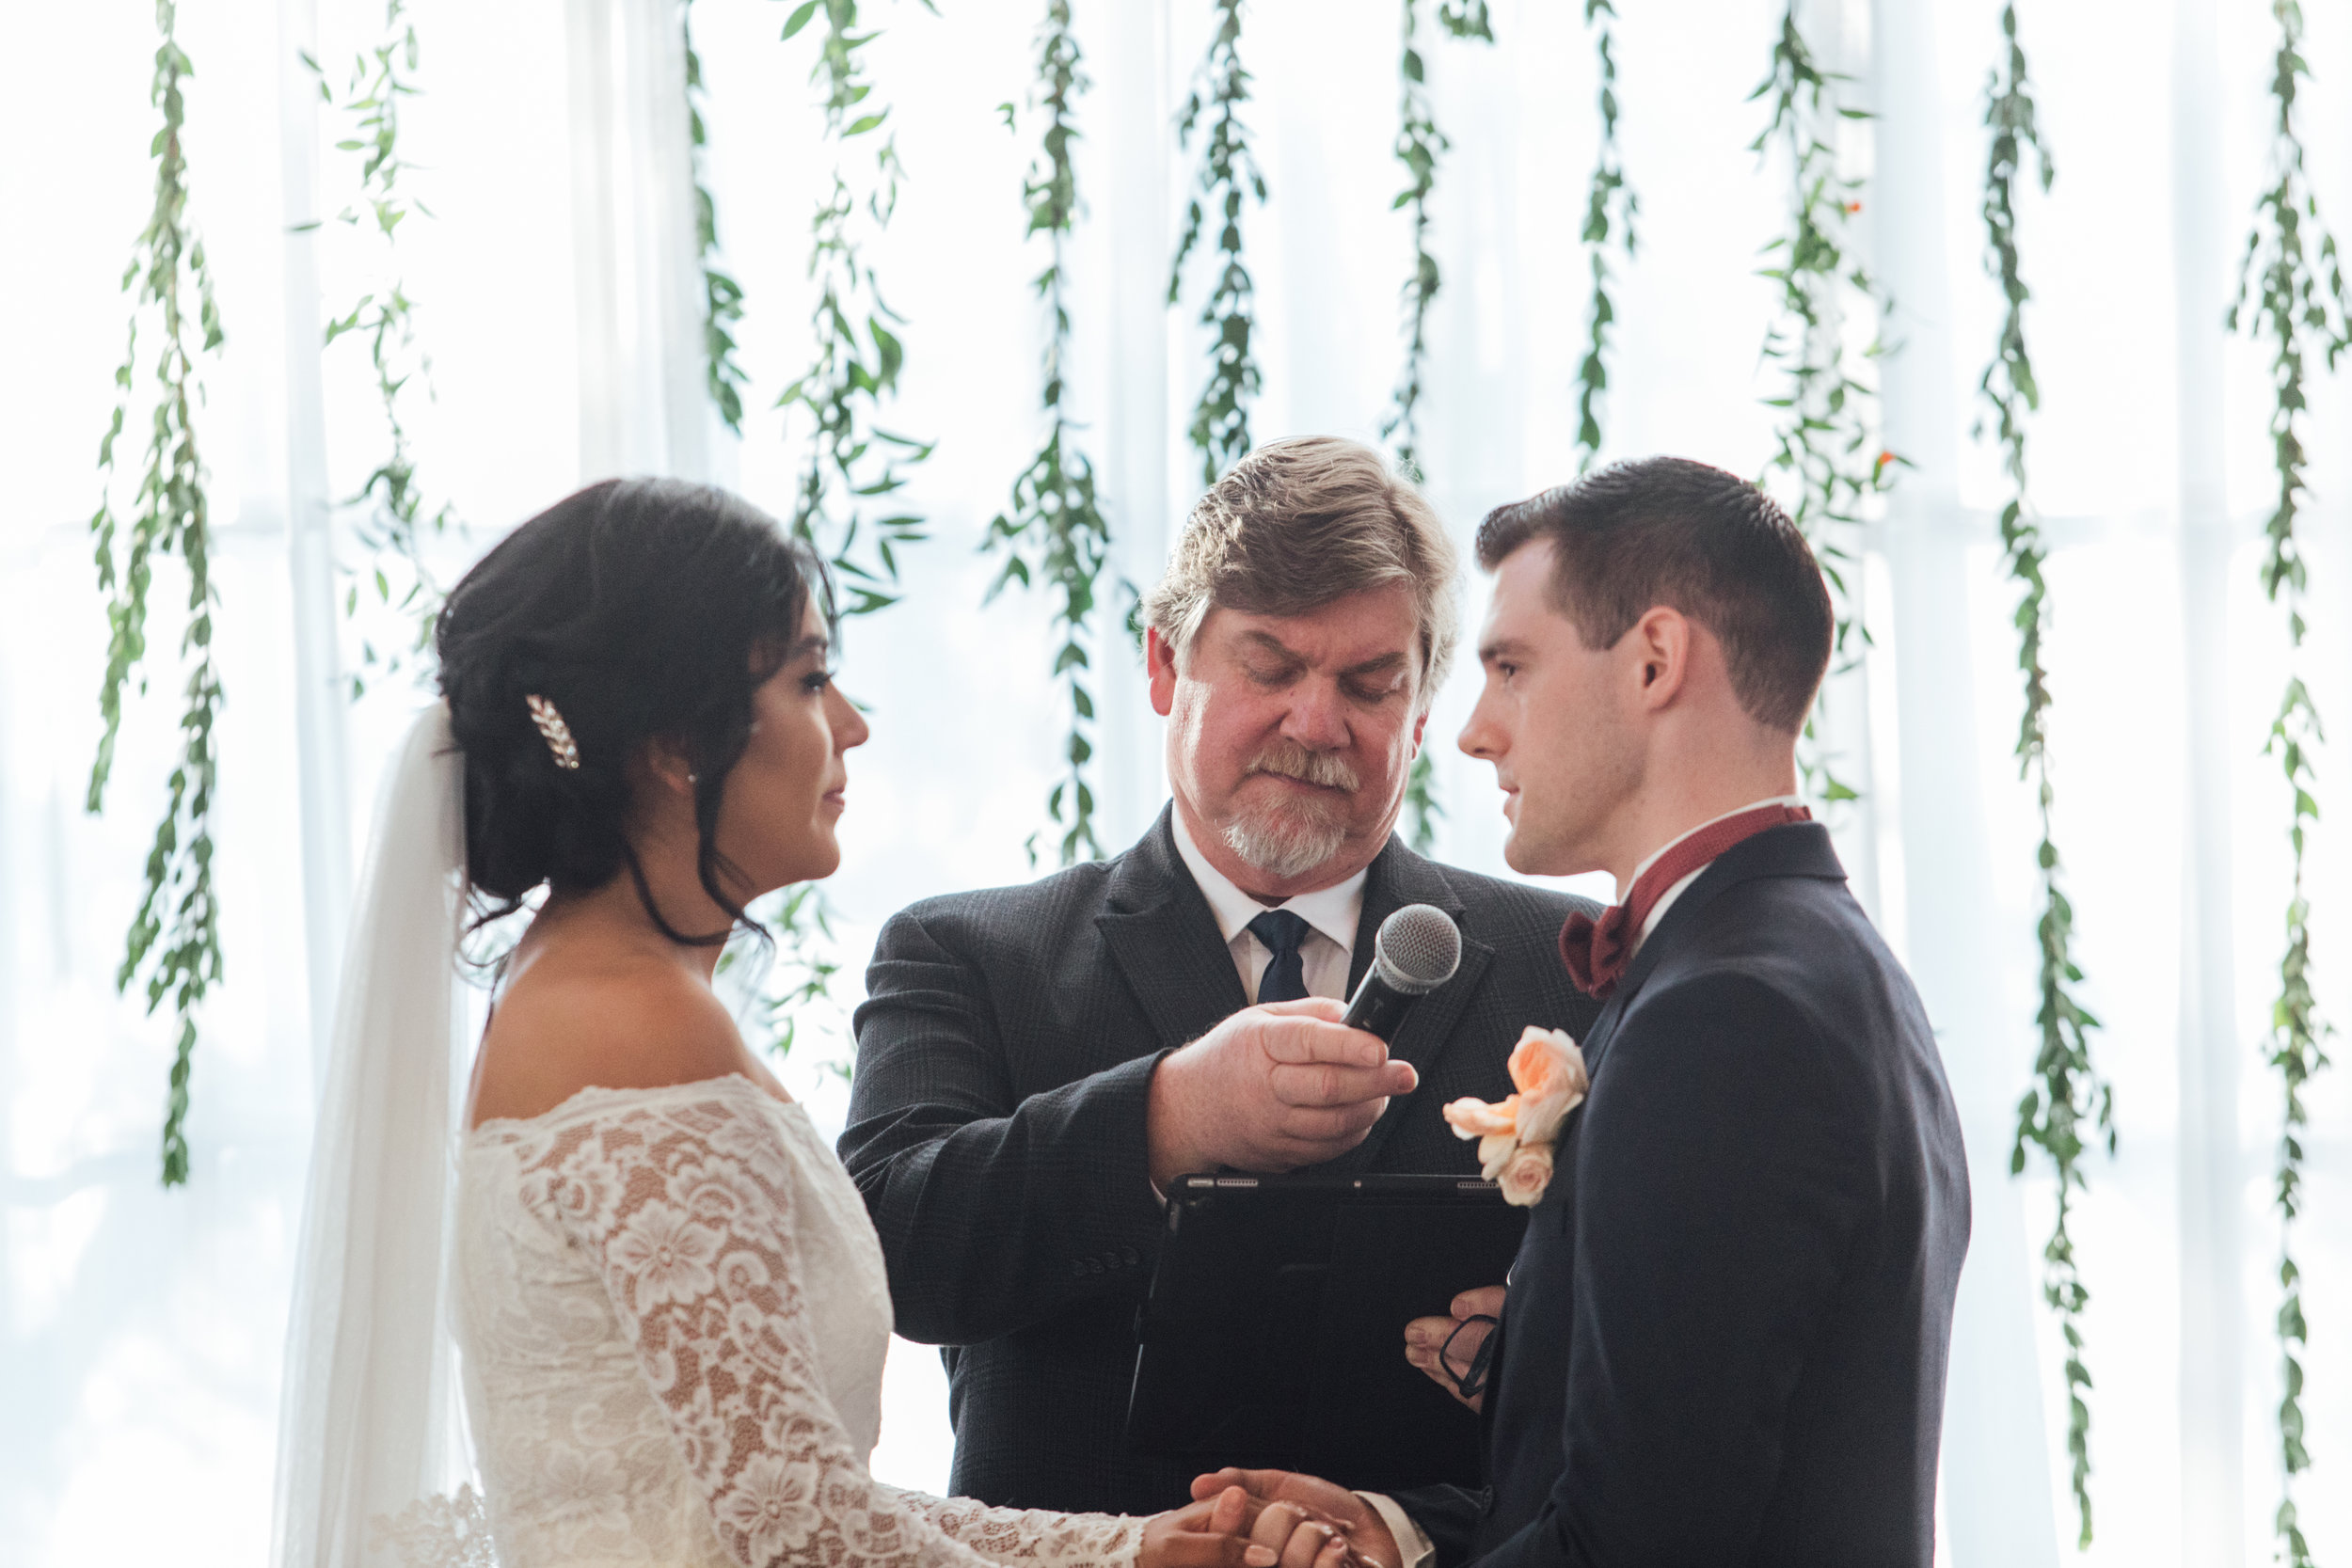 Wedding_GregDamarie_2018_178.jpg